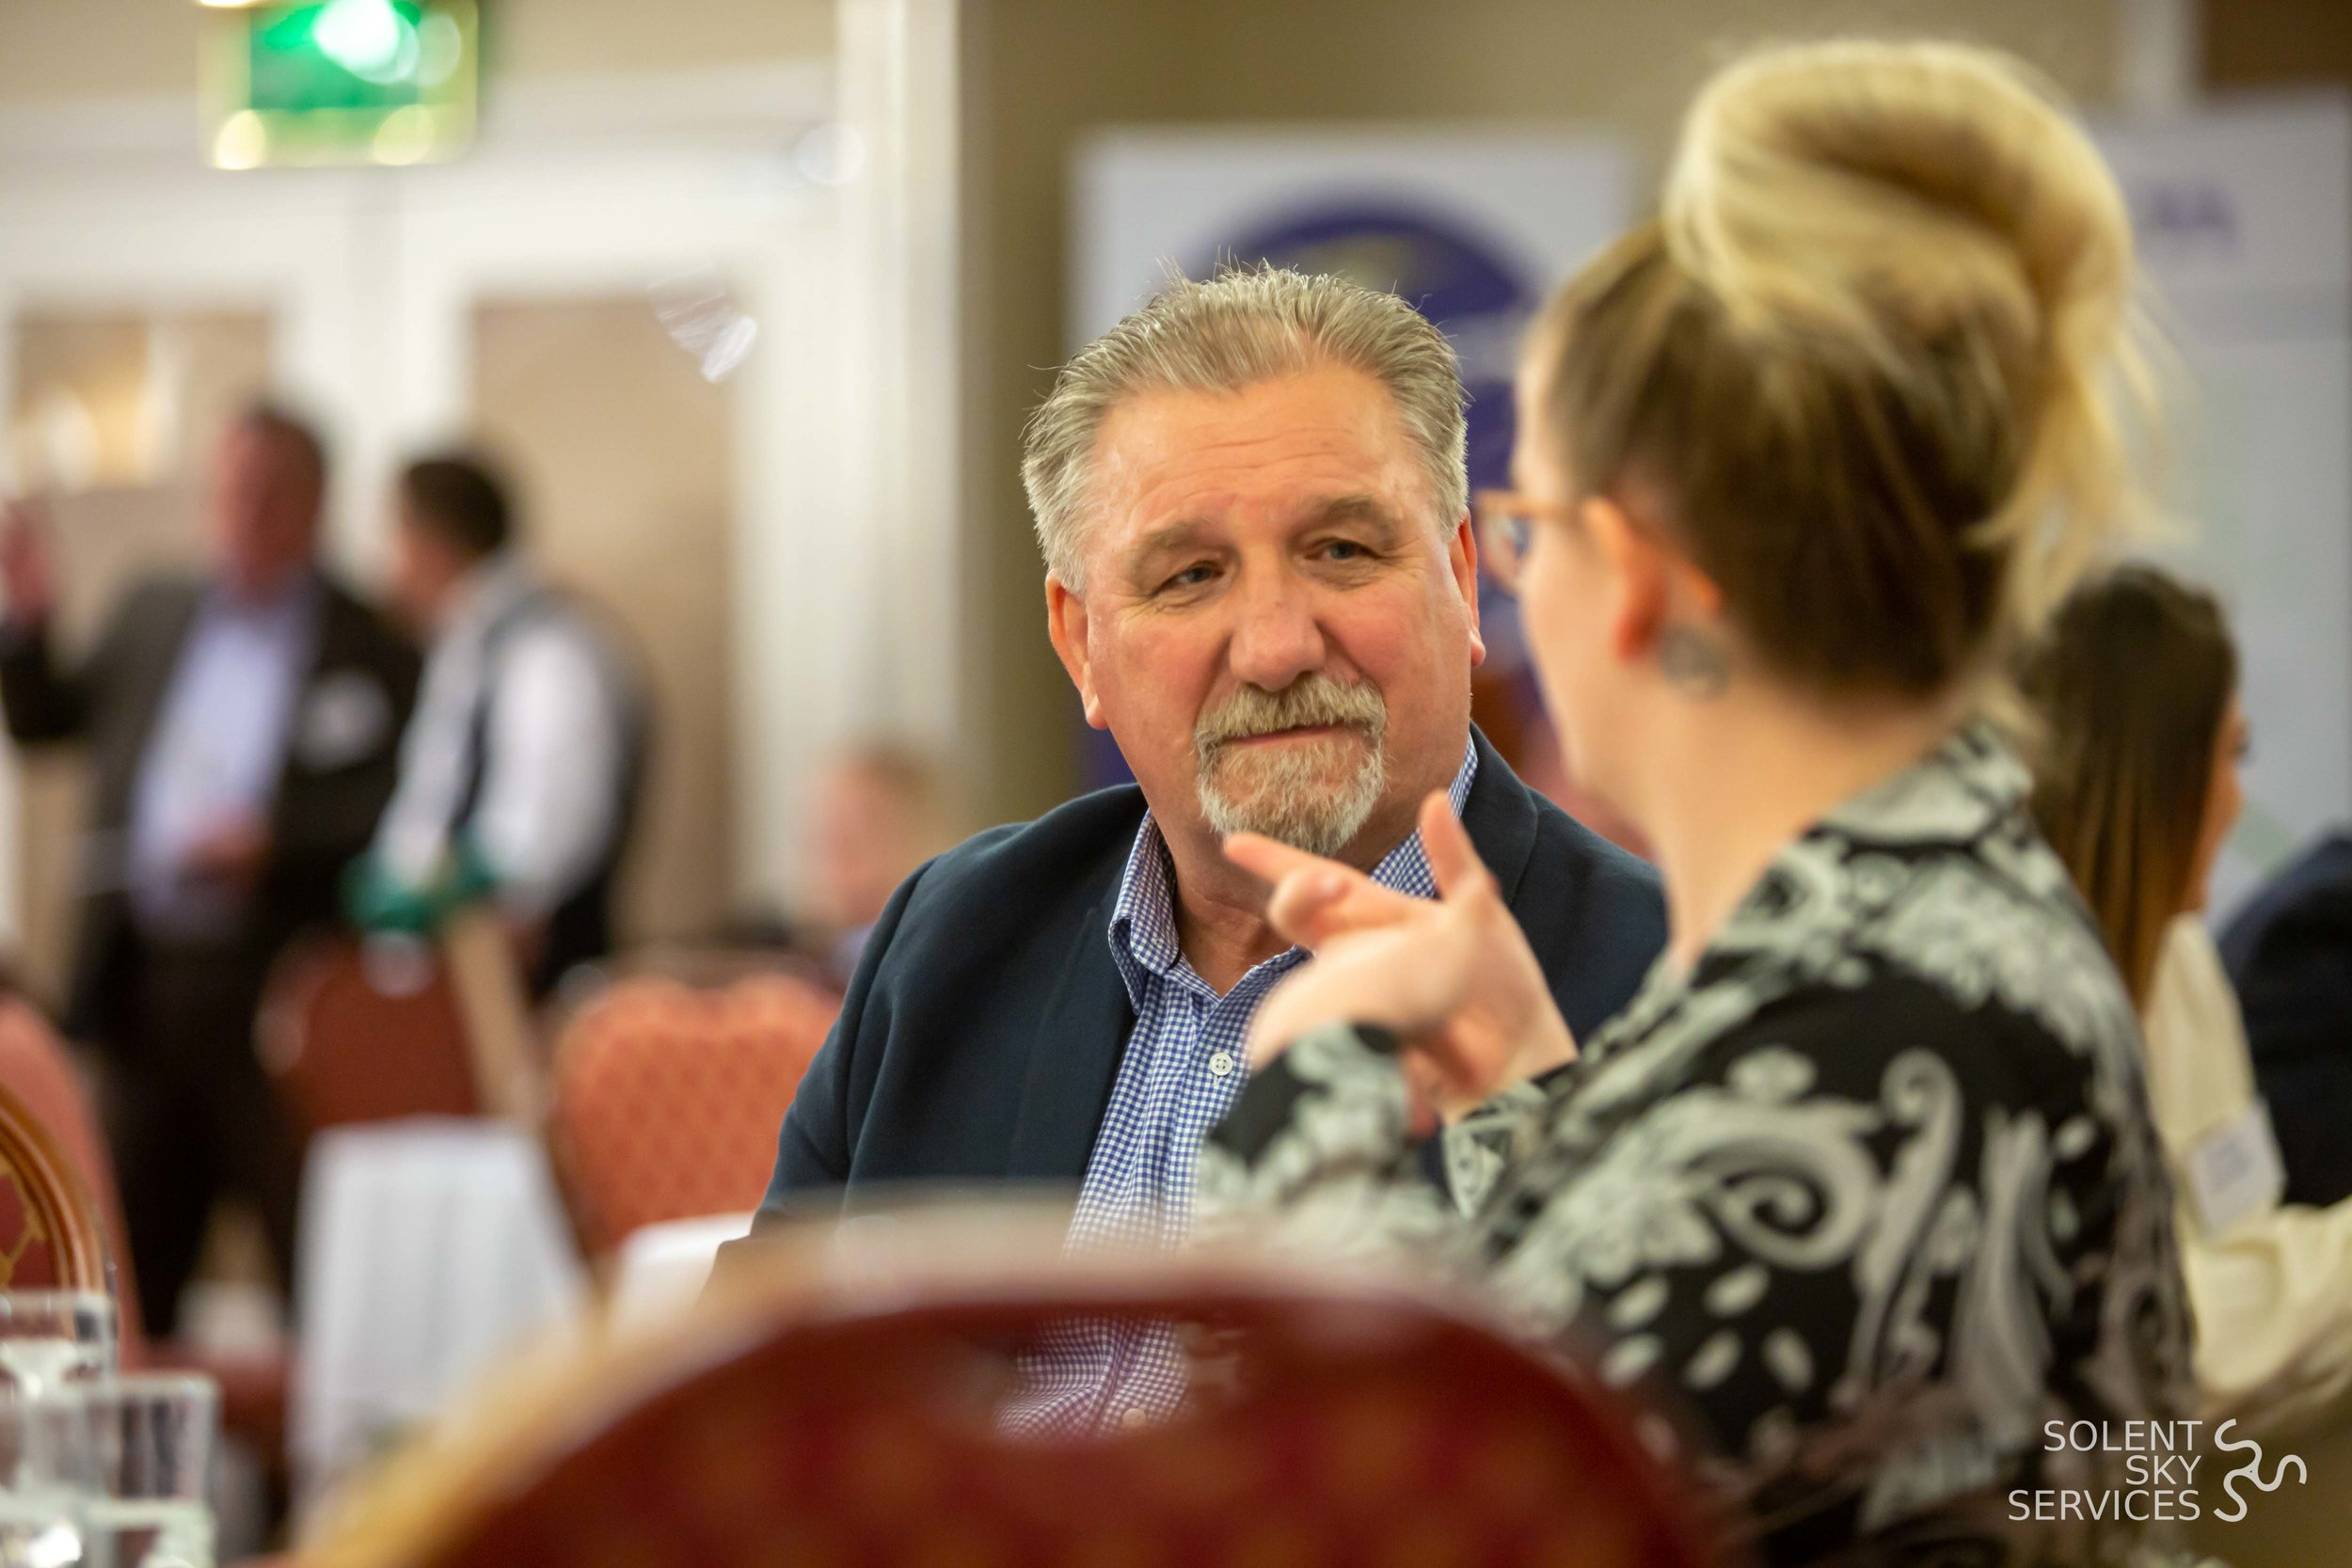 Synergy Success Networking Event #2 - Solent Sky Services-8.JPG